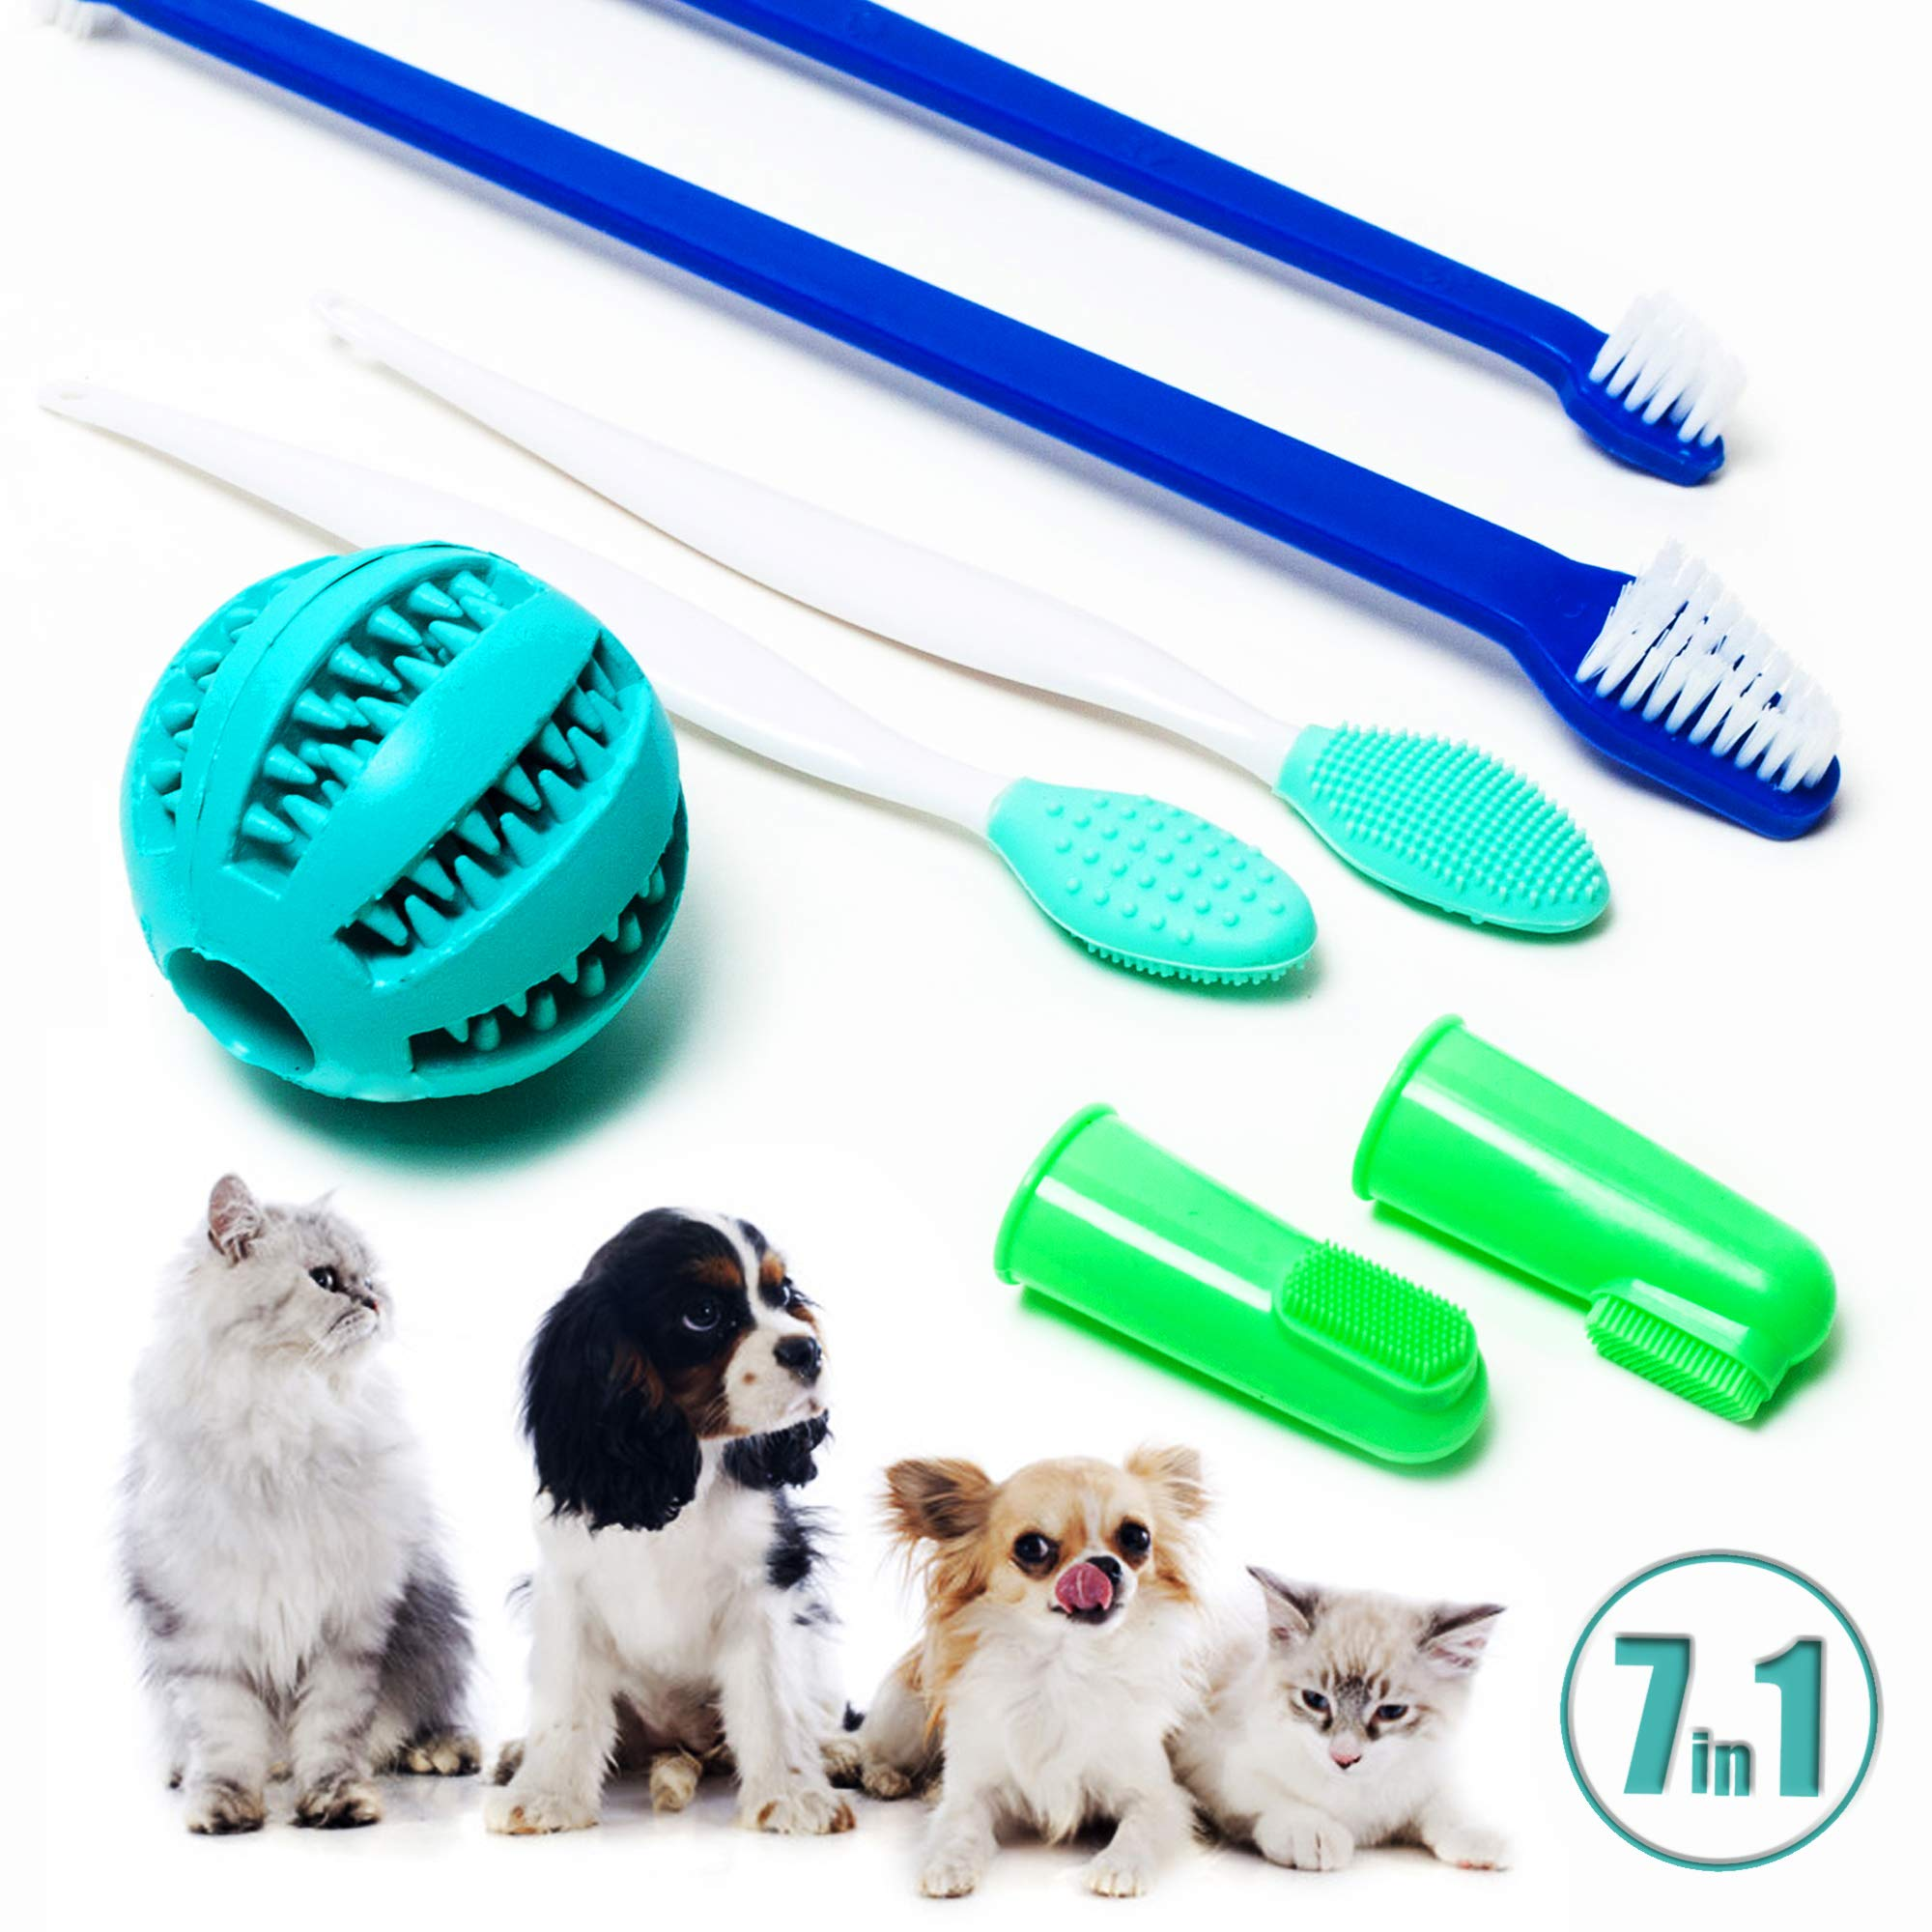 EC Markt Dog and Cat Toothbrush Kit - 7 in 1 Pack, Pet Oral Care Set with Soft Bristle Brushes, Silicone Finger Brush and Chewing Ball for a Professional Cleaning at Home by EC Markt